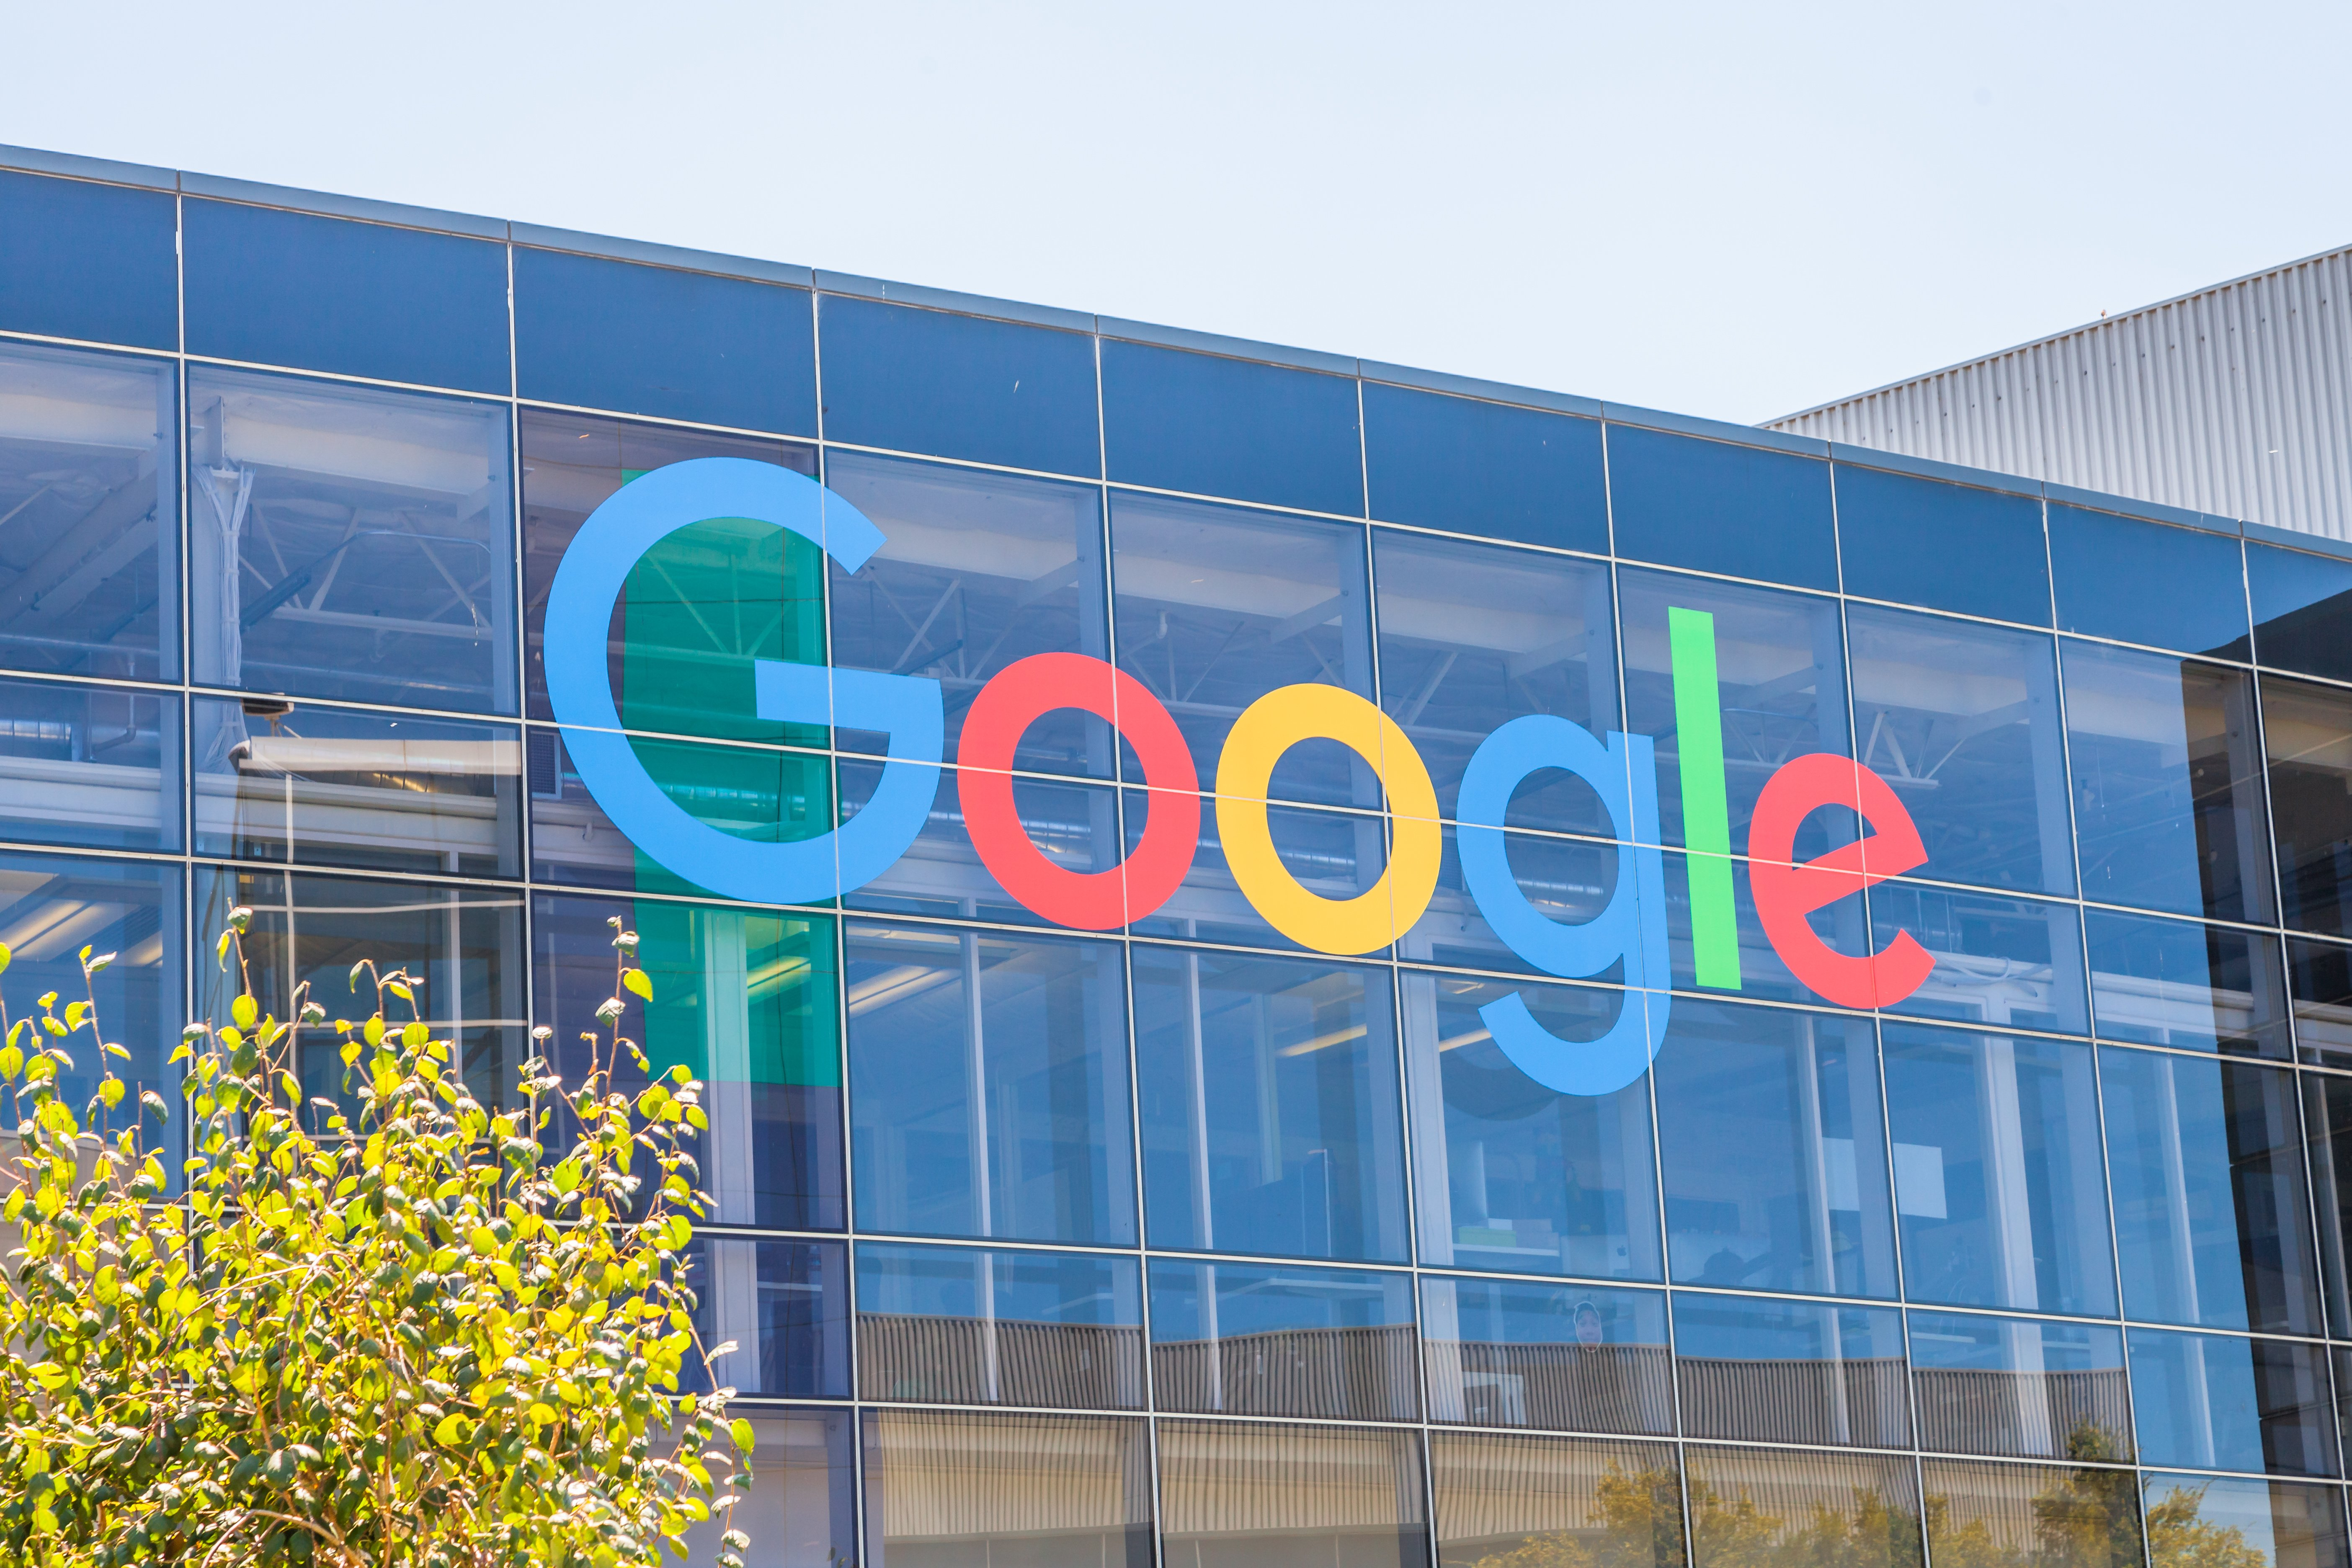 Close up of Google logo on one of its buildings. Image credit to: bennymarty - stock.adobe.com.